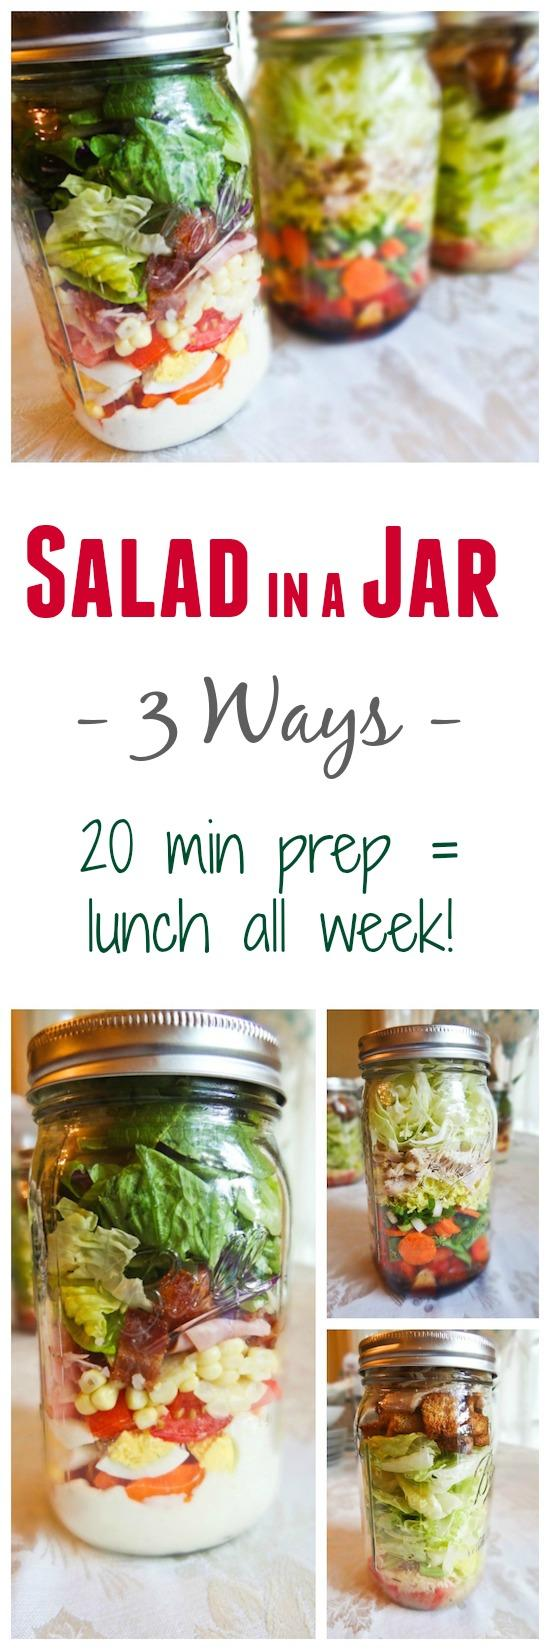 Looking for a quick lunch option? Spend 20 minutes prepping and you can have lunches ready and waiting in the fridge all week long. Try these 3 flavor combos or create your own!